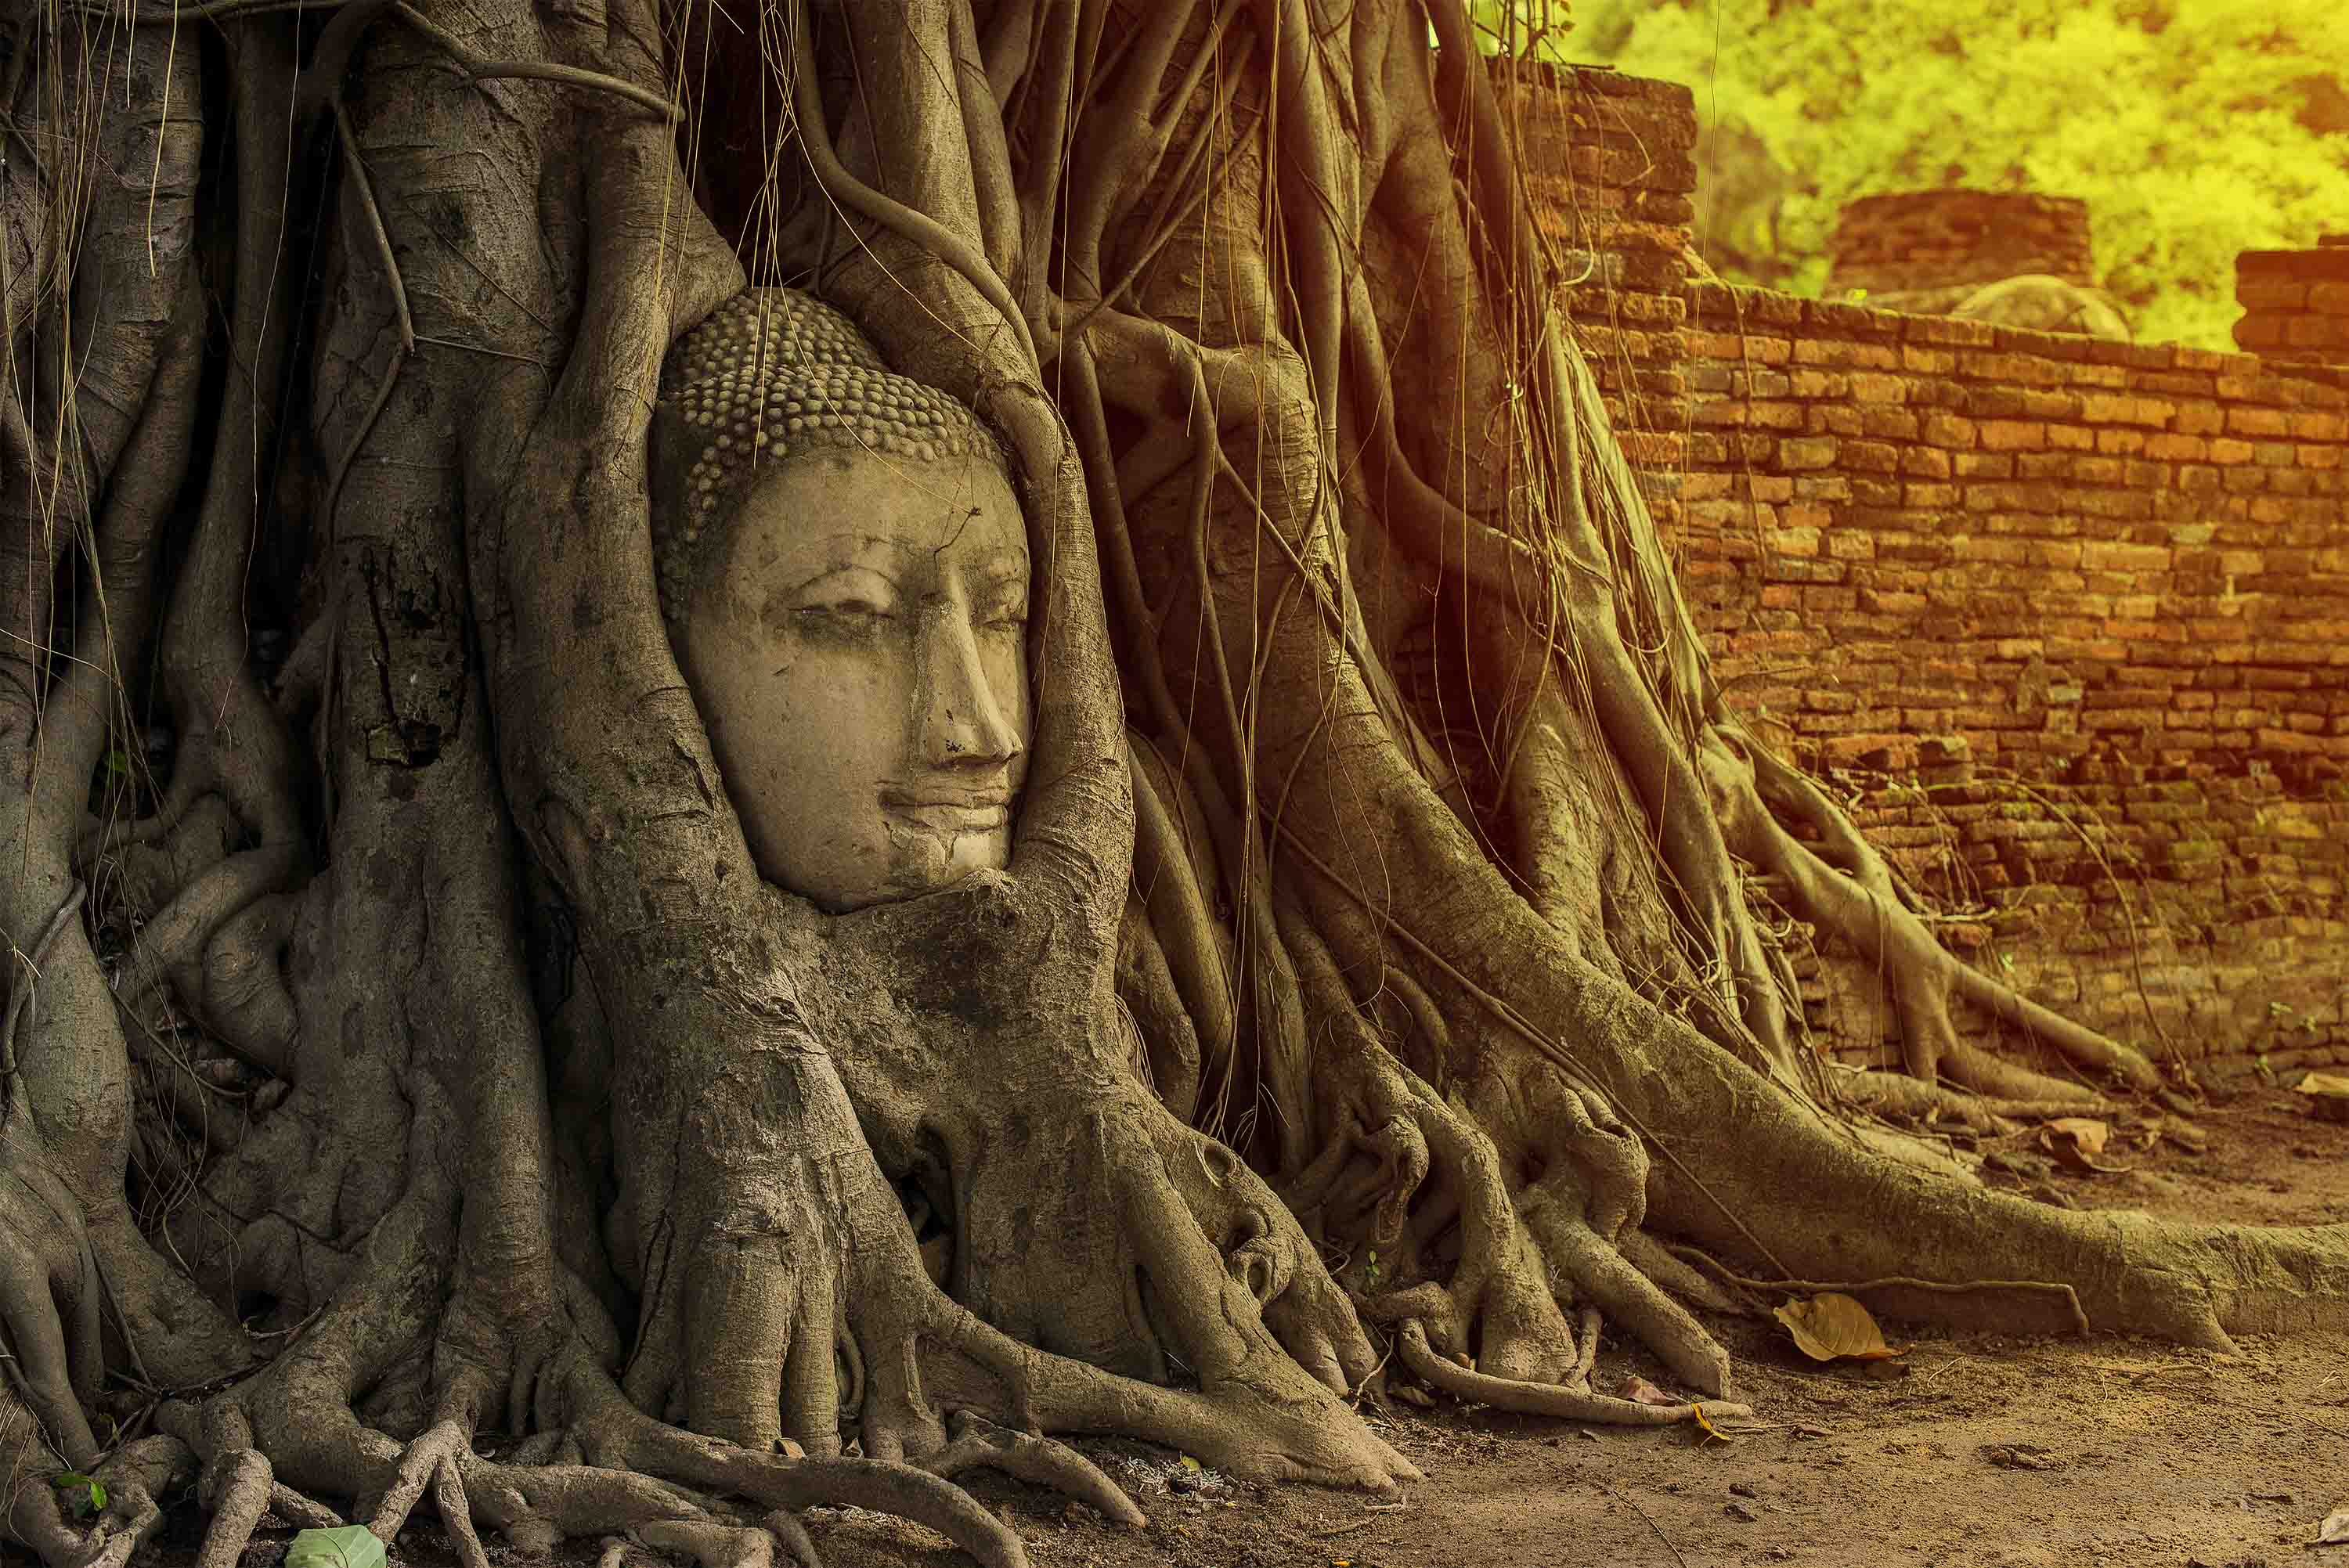 DISCOVER AYUTTHAYA – A SHOWPIECE OF SIAM